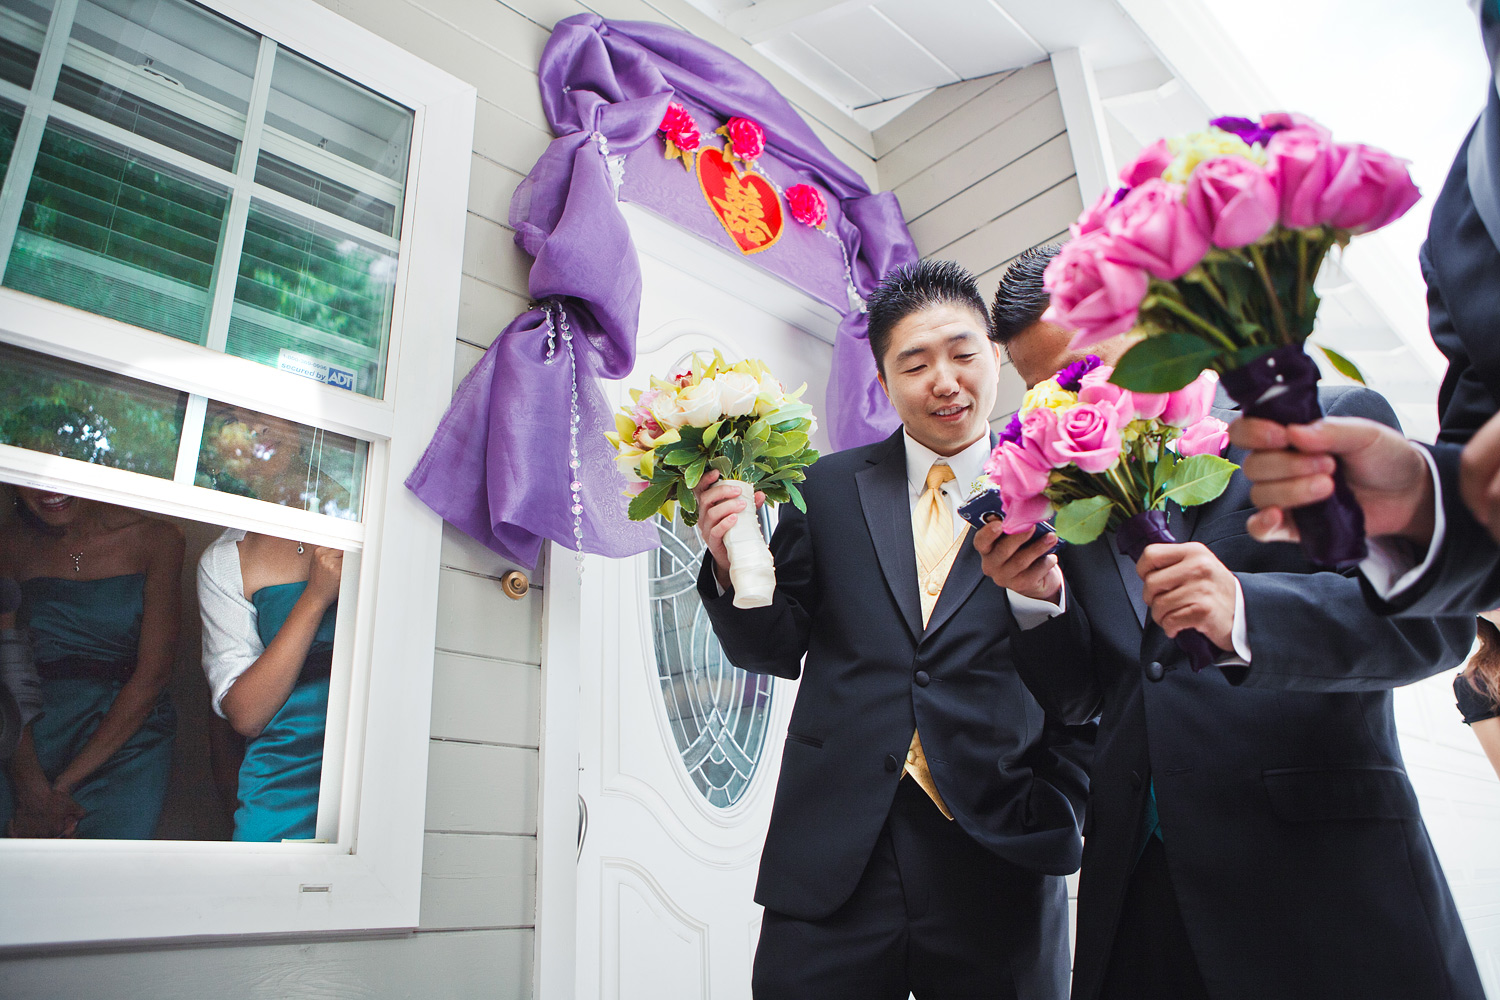 Chinese Wedding Door Games | Stephen Grant Photography